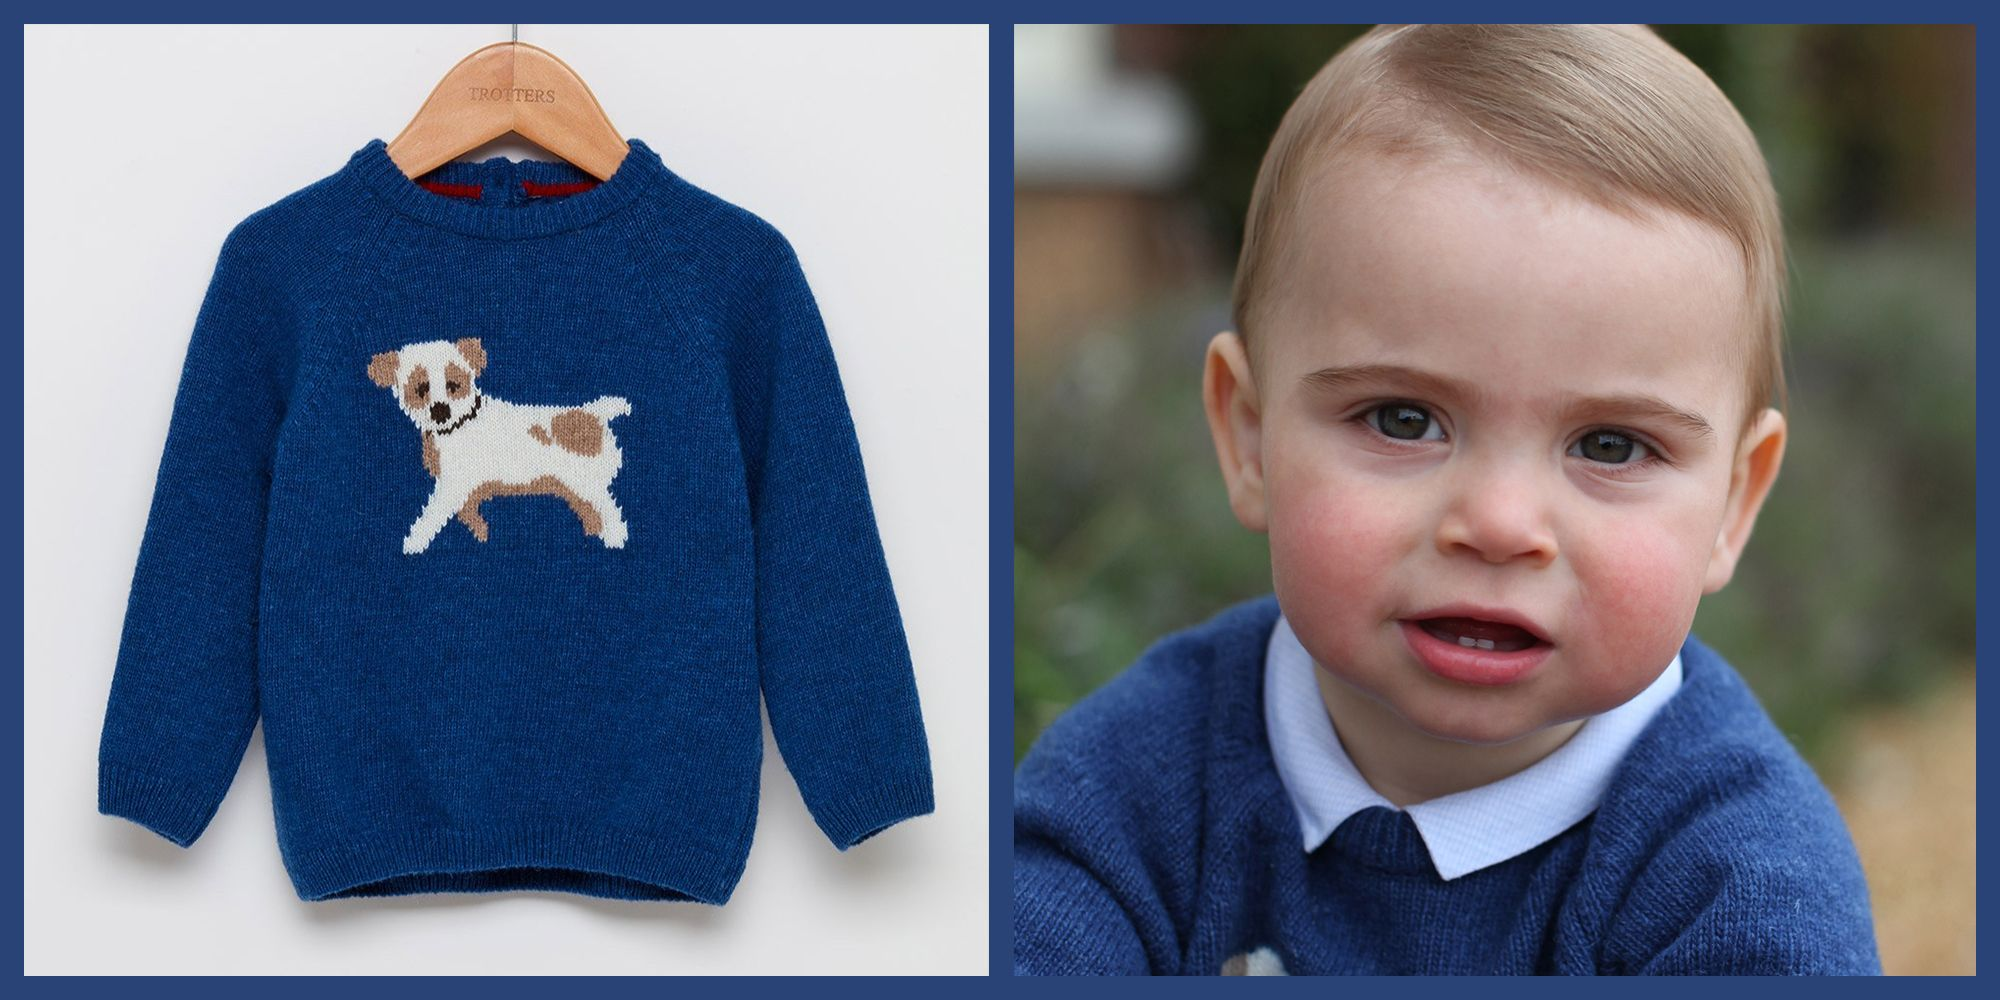 Prince Louis's Adorable Puppy Sweater Is Still Available Online